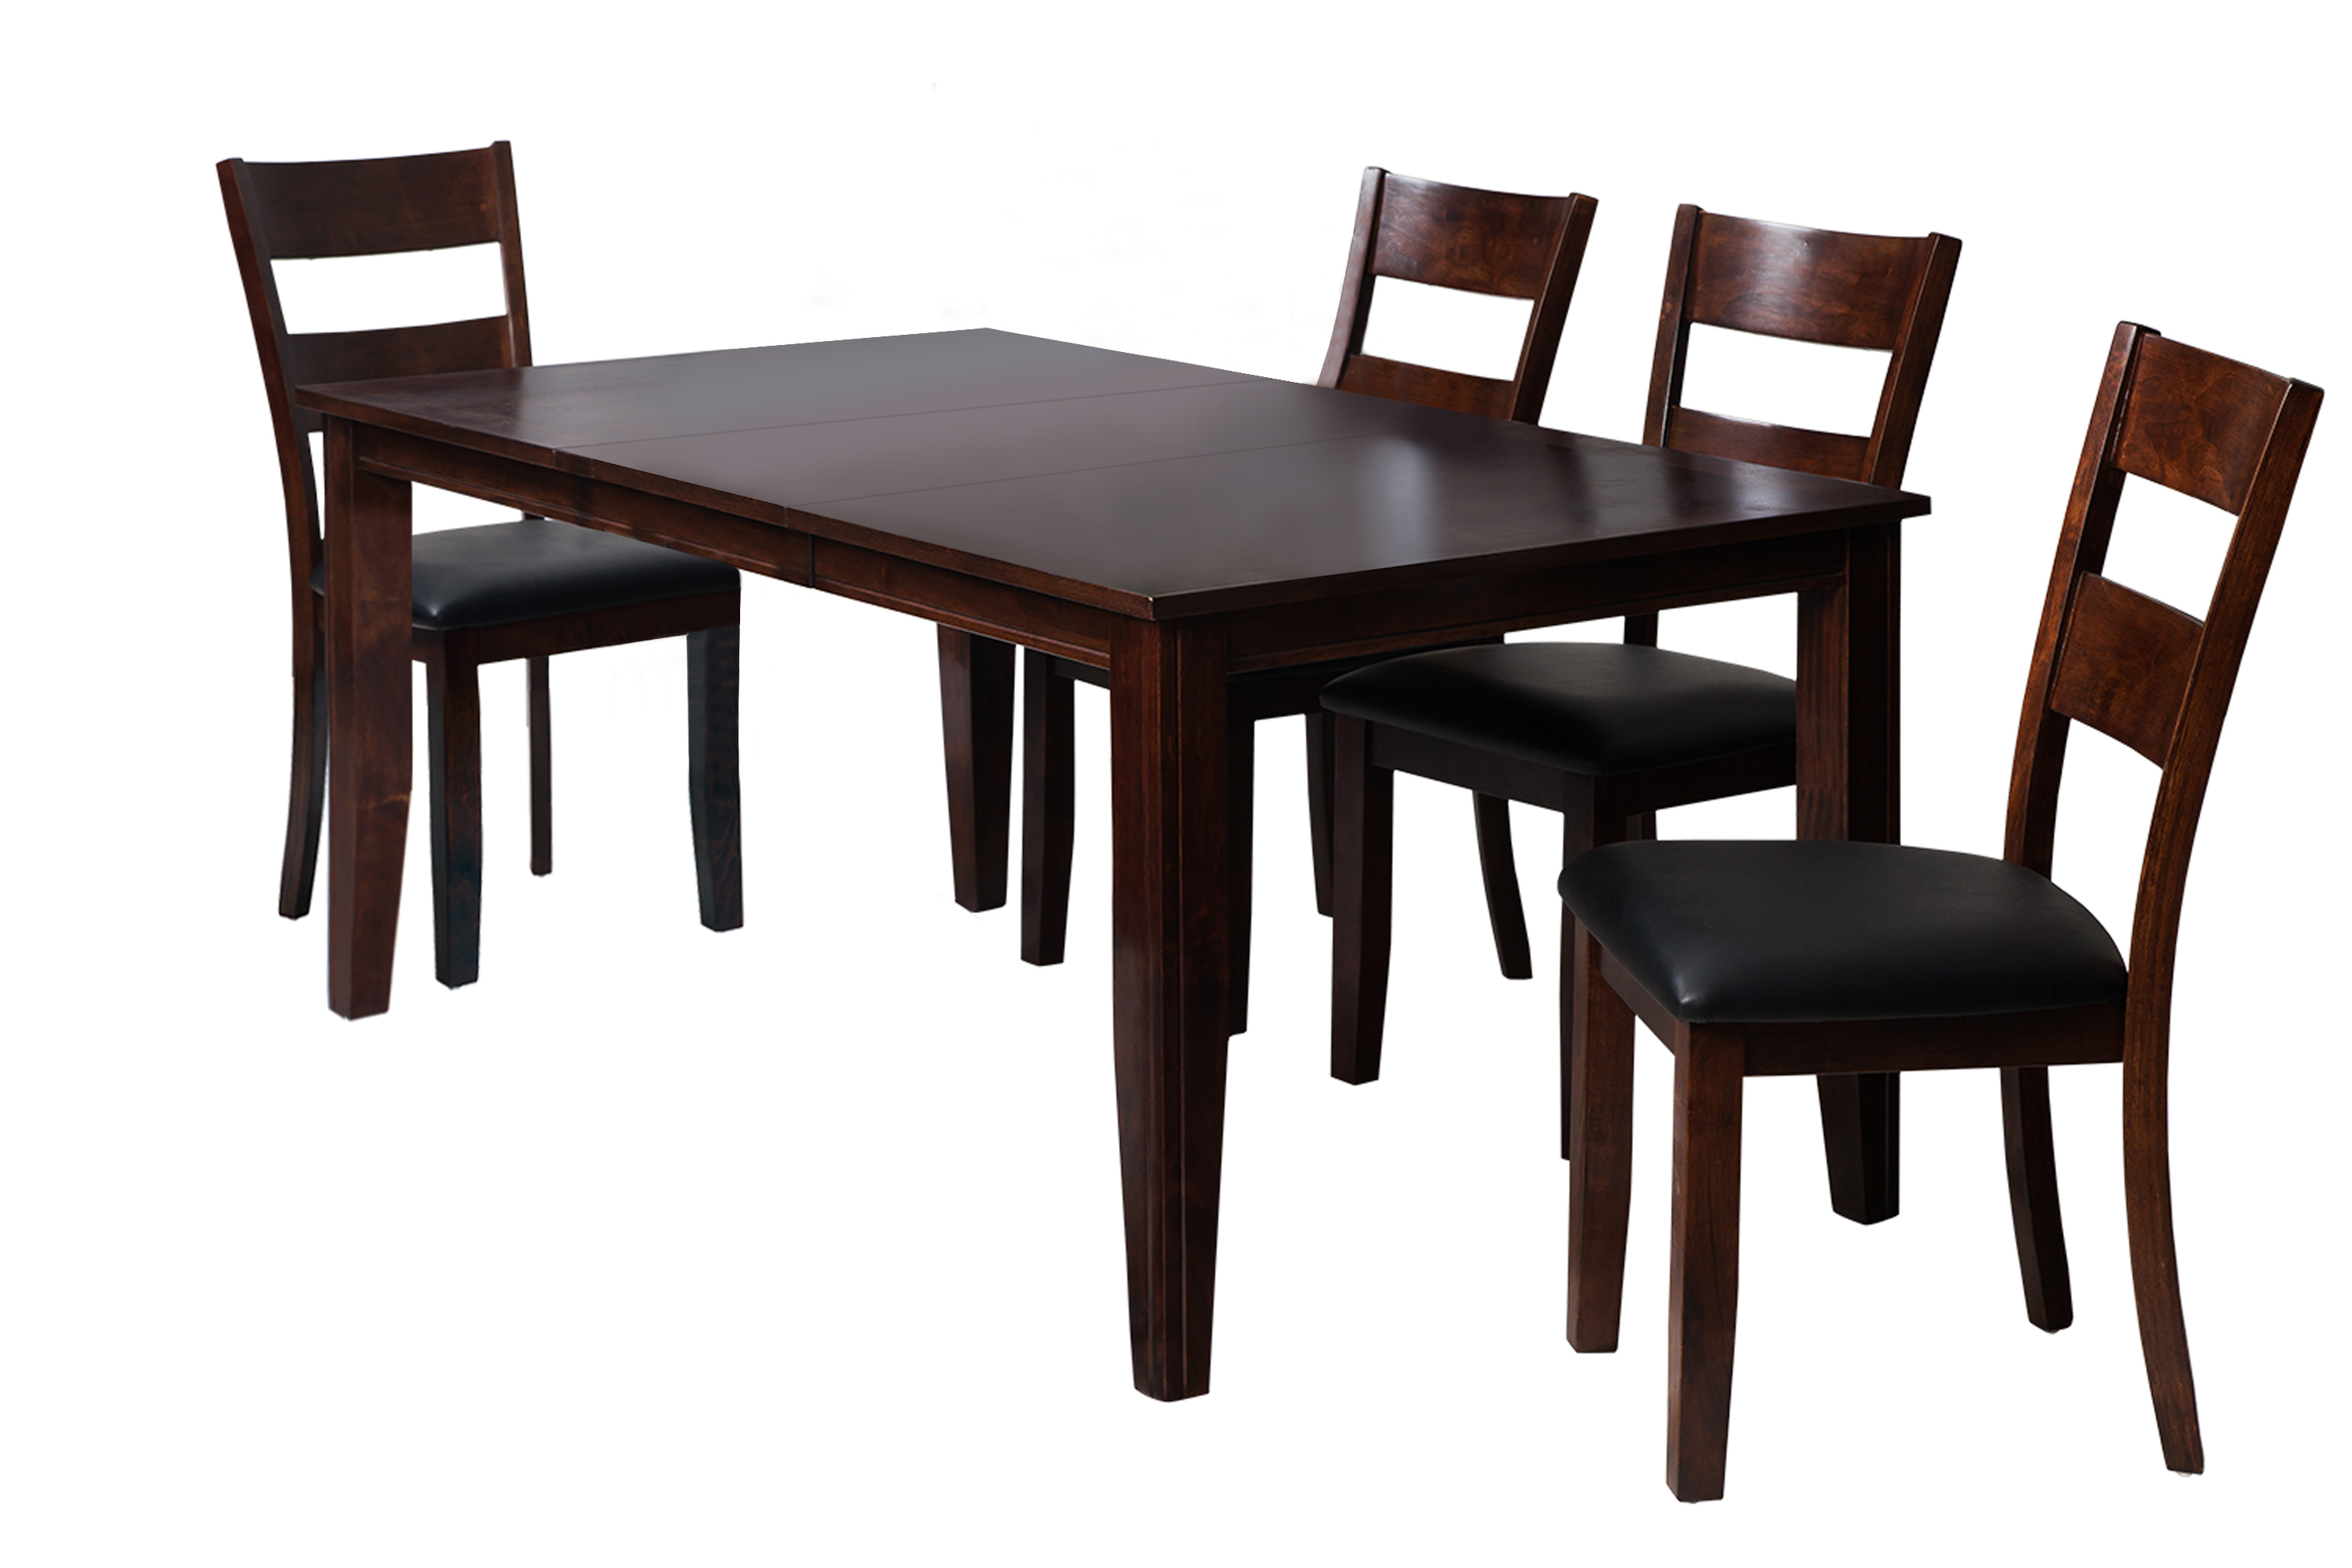 Ttp Furnish Regarding Most Up To Date Adan 5 Piece Solid Wood Dining Sets (Set Of 5) (View 8 of 20)